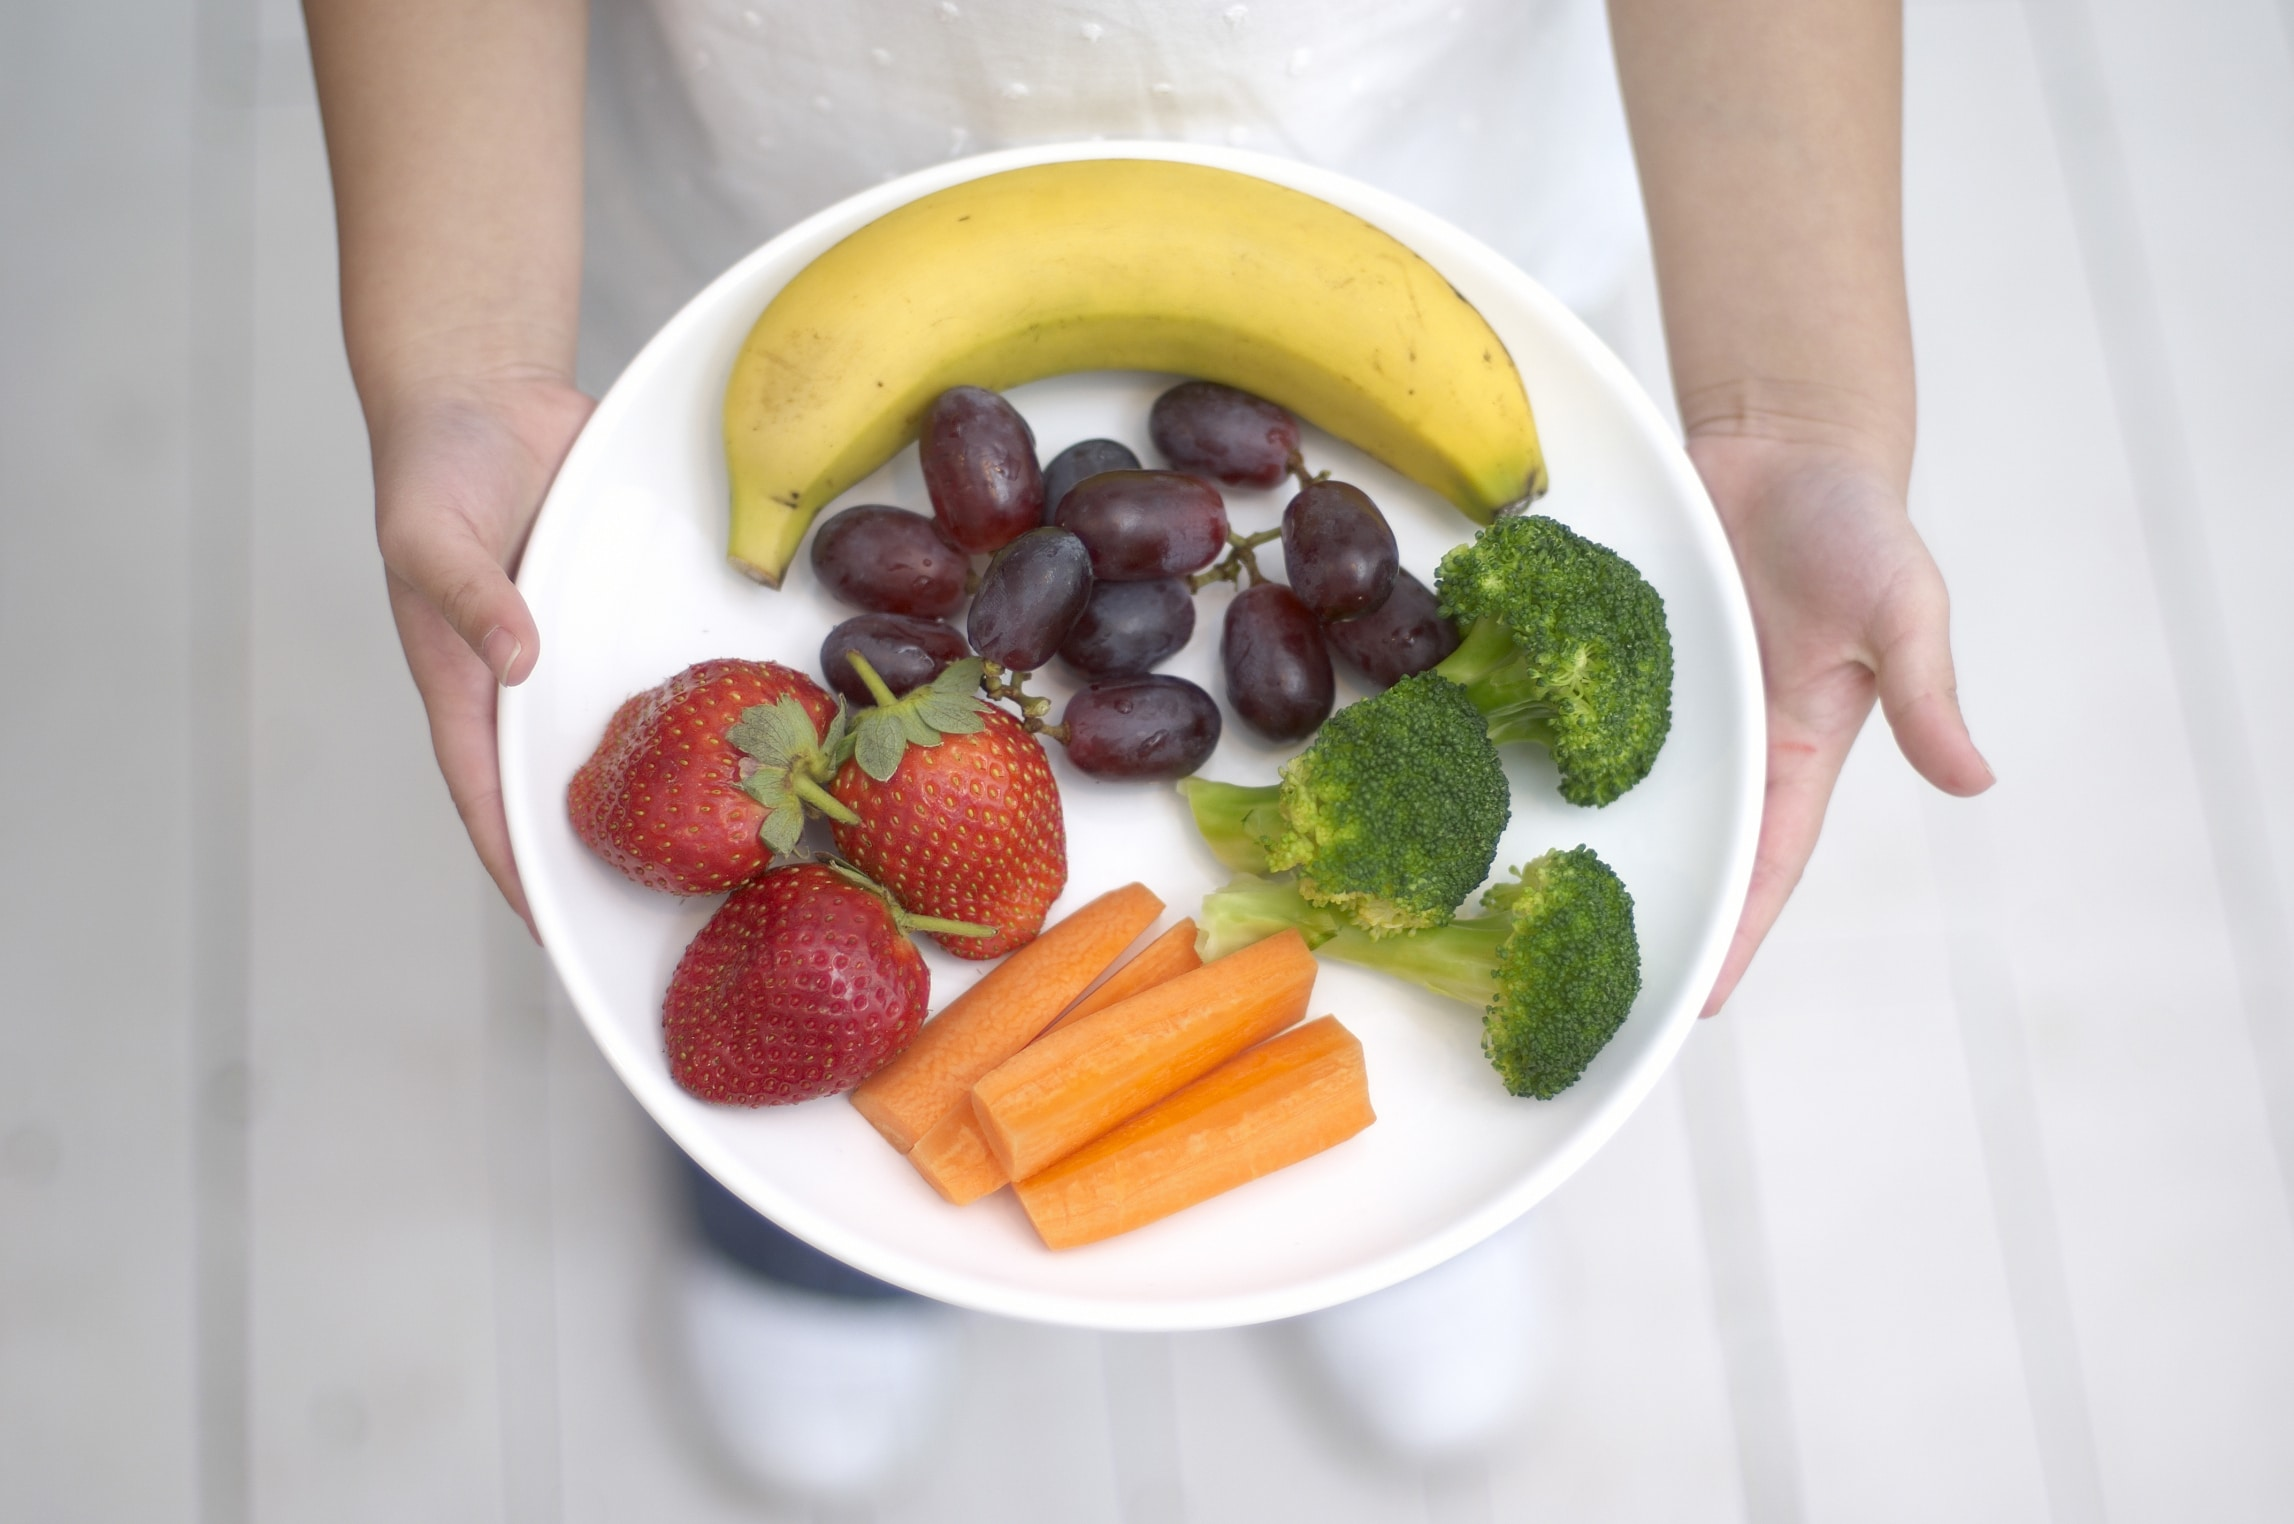 Picture of a plate of fruit and vegetables